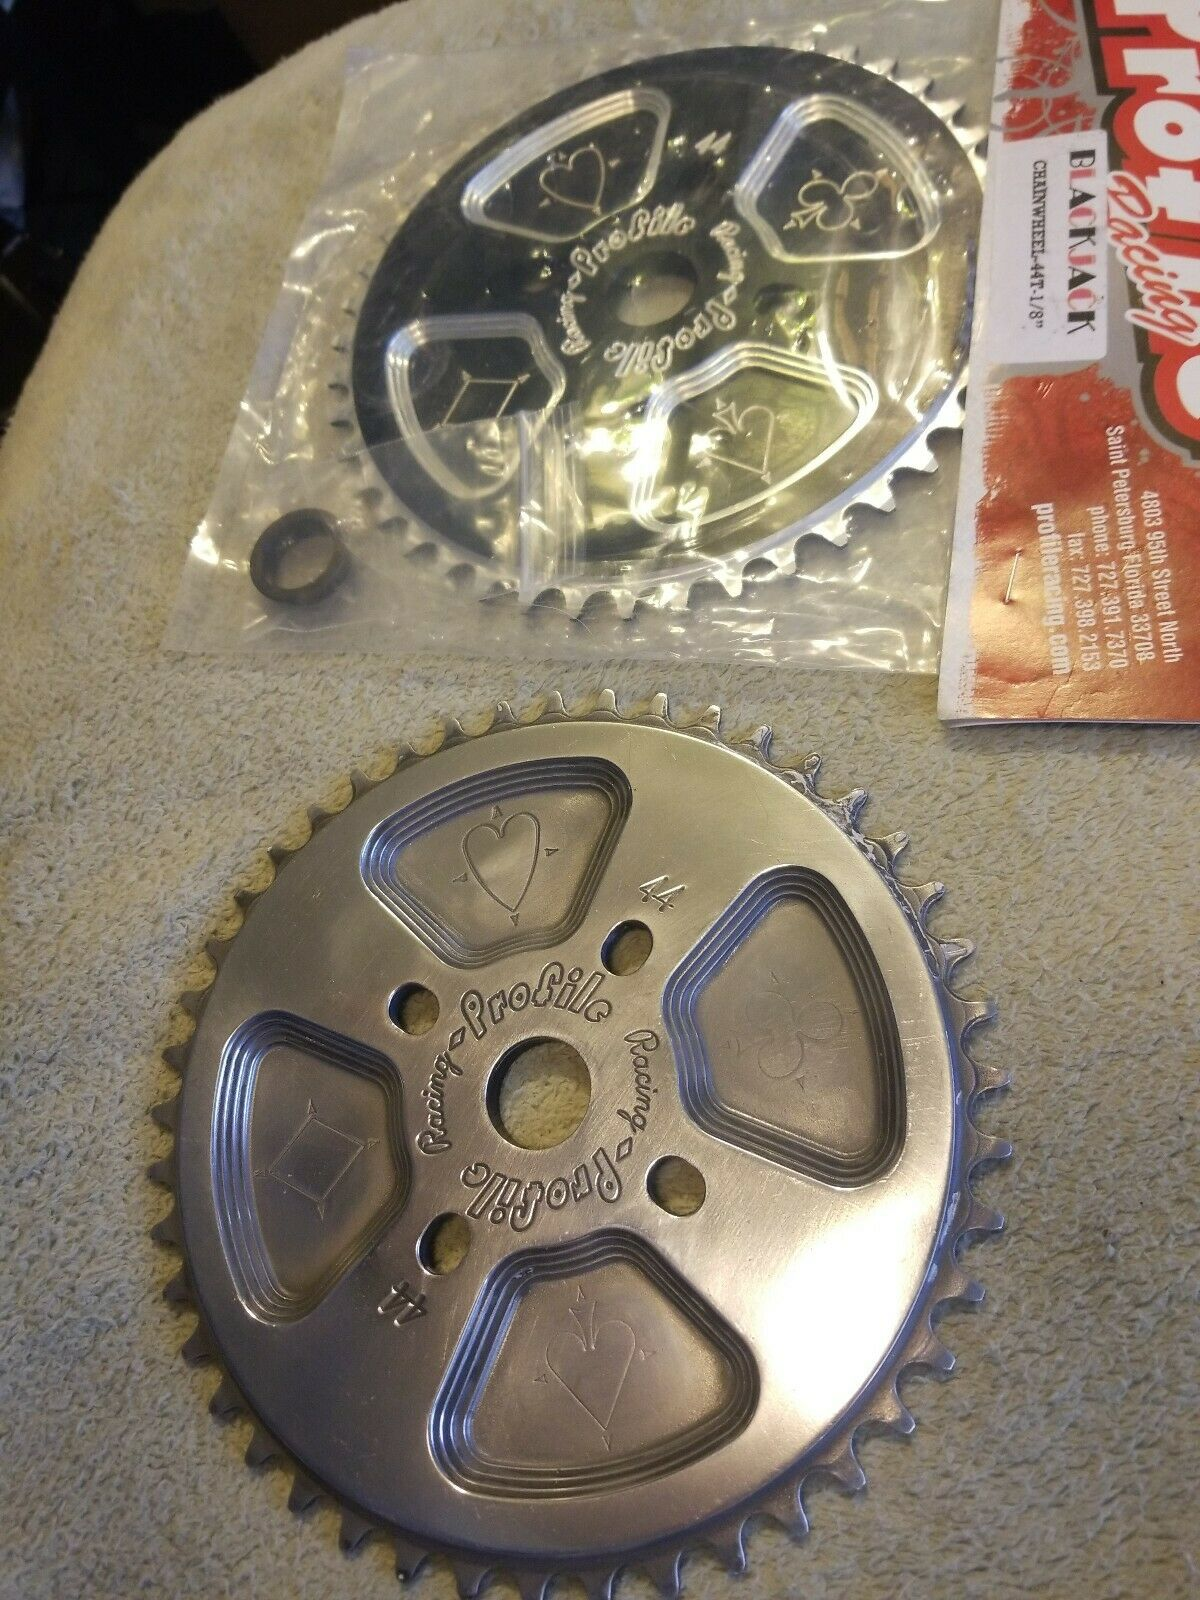 Get 2 Profile Racing BMX bike SPROCKET s 44t chainrings Fits gt haro profile